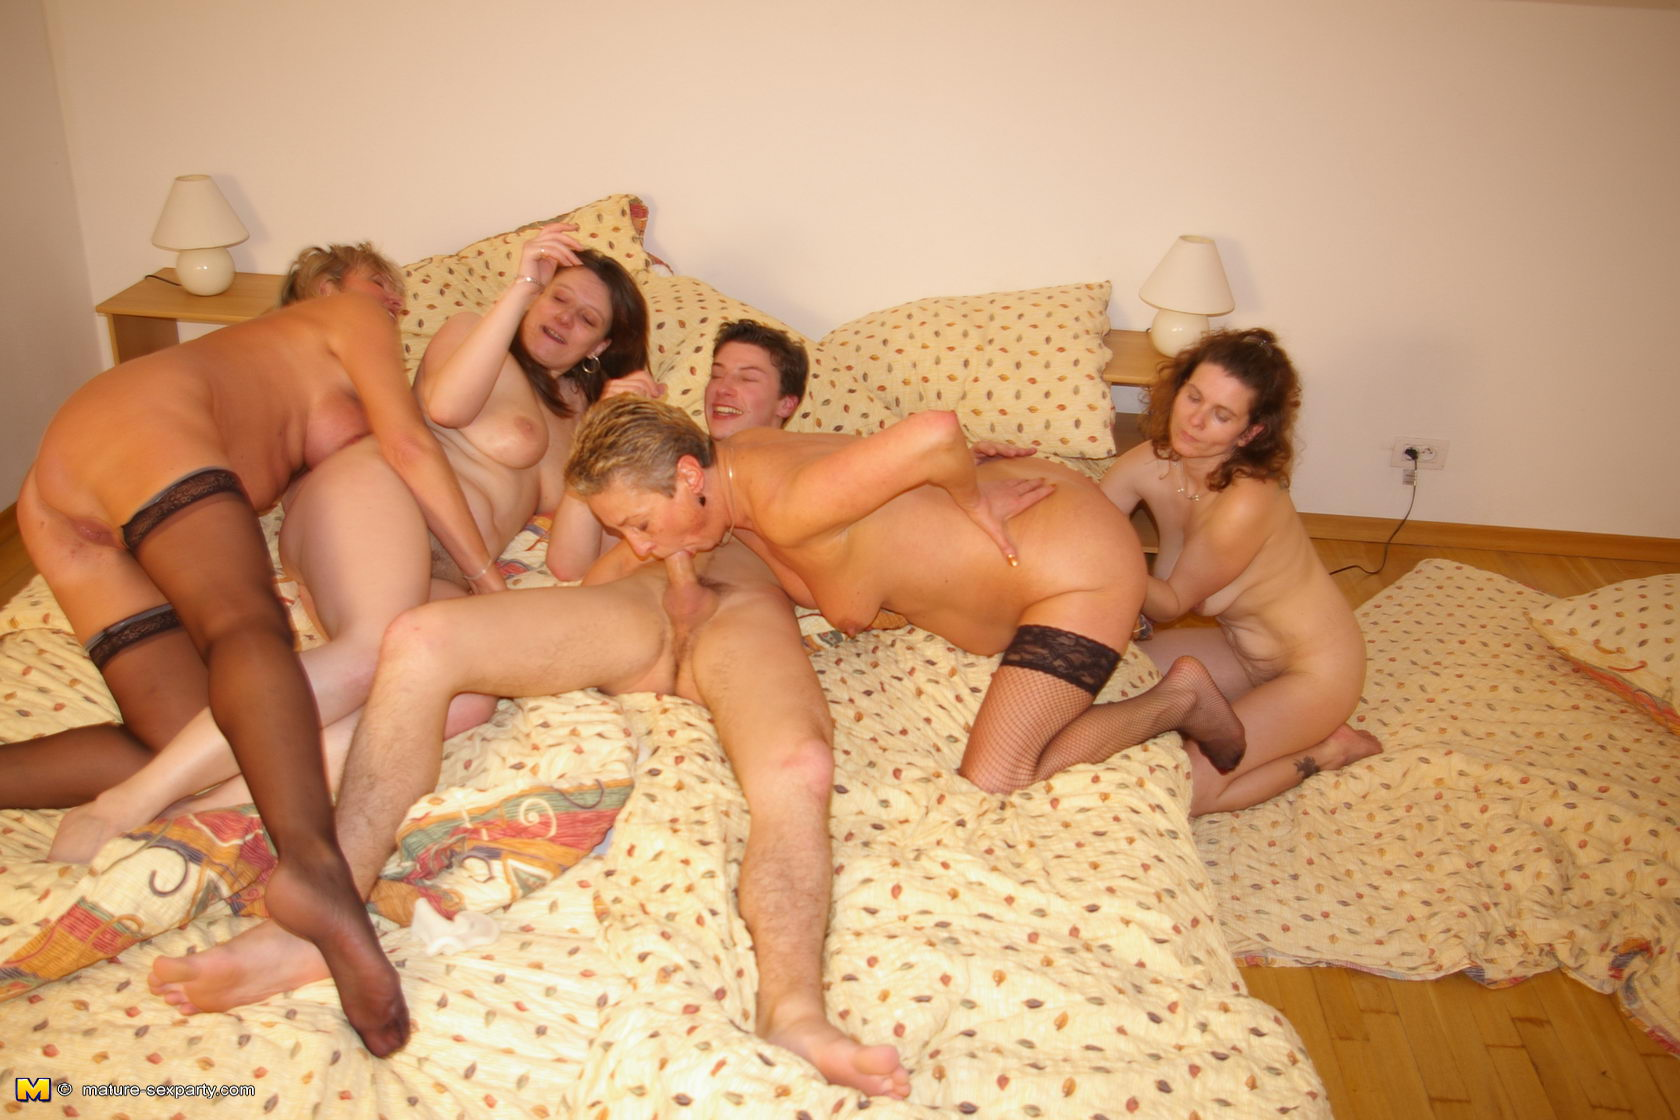 Well Group mature nude grannies not